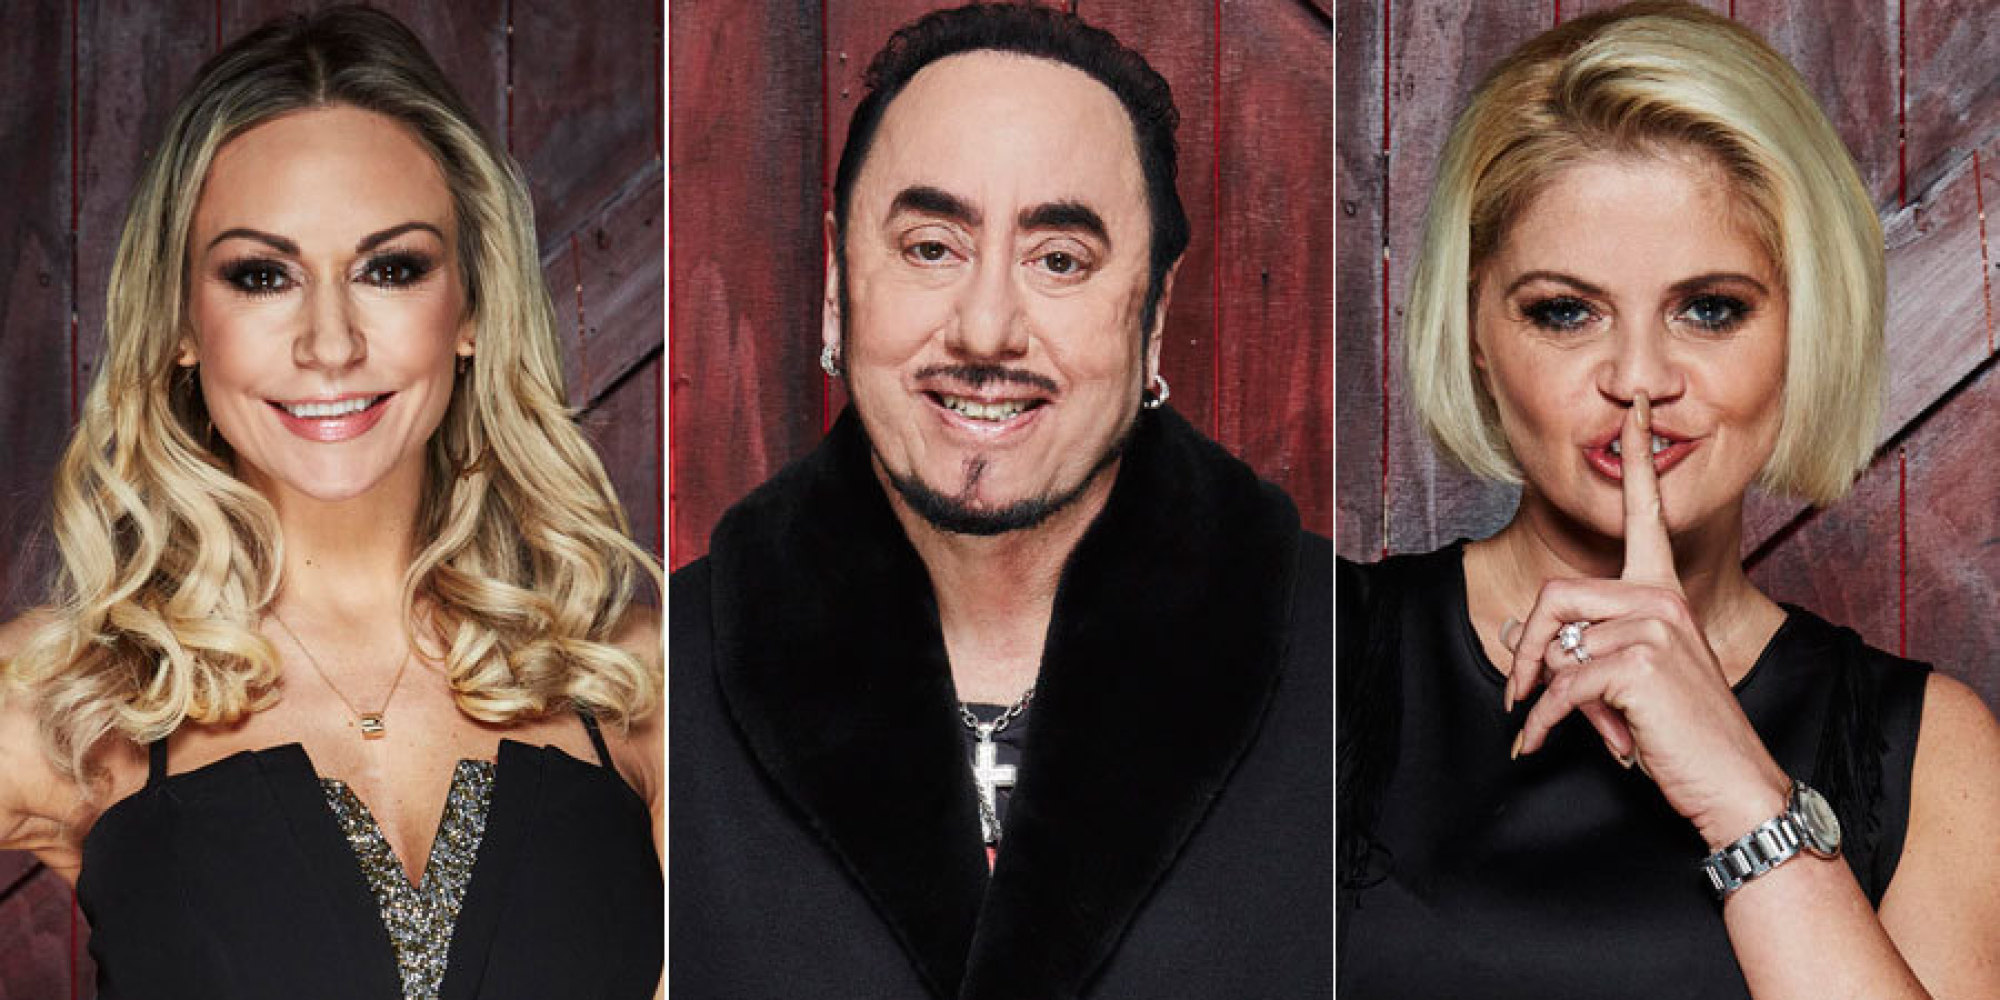 Celebrity Big Brother: Meet the housemates - In pictures